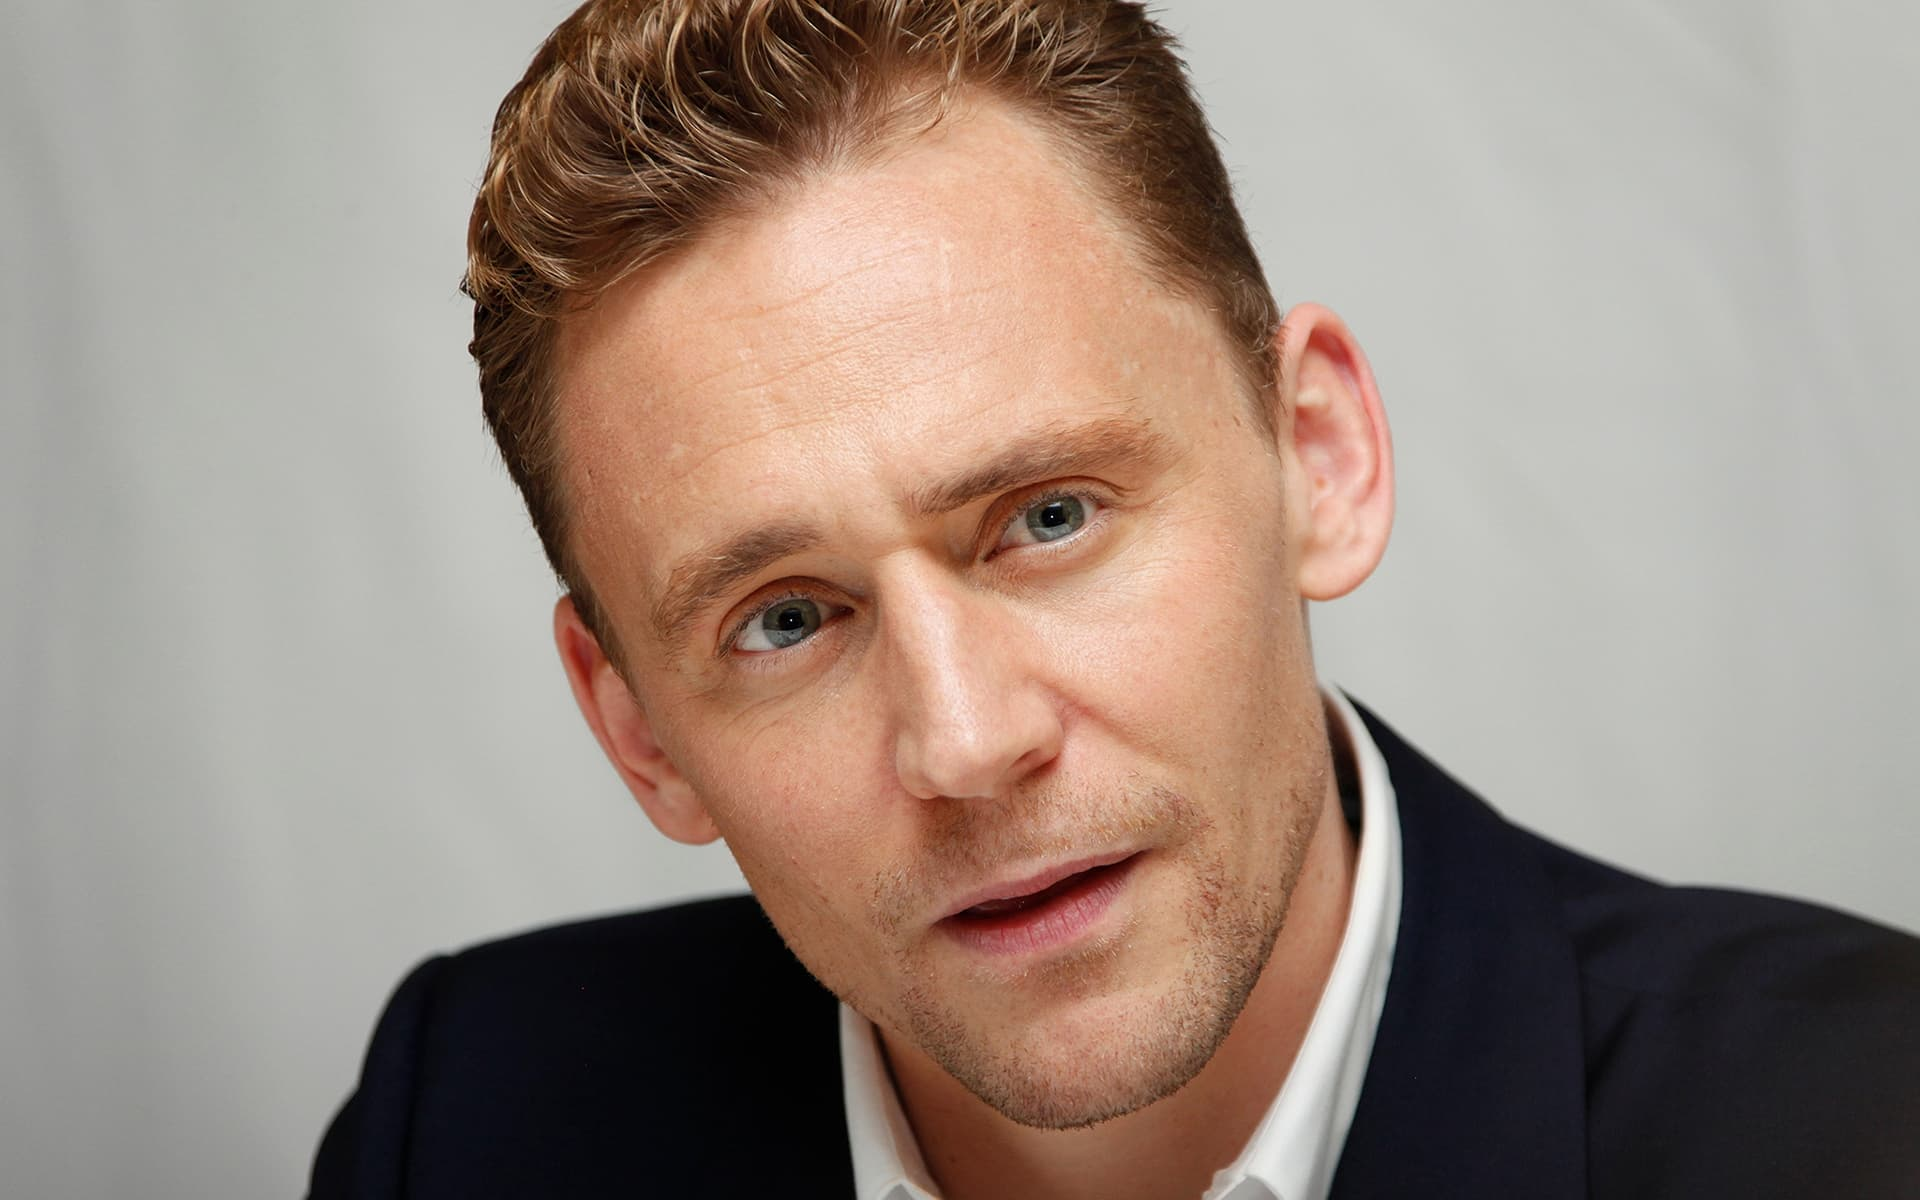 Tom Hiddleston wallpaper grey background picture High Quality